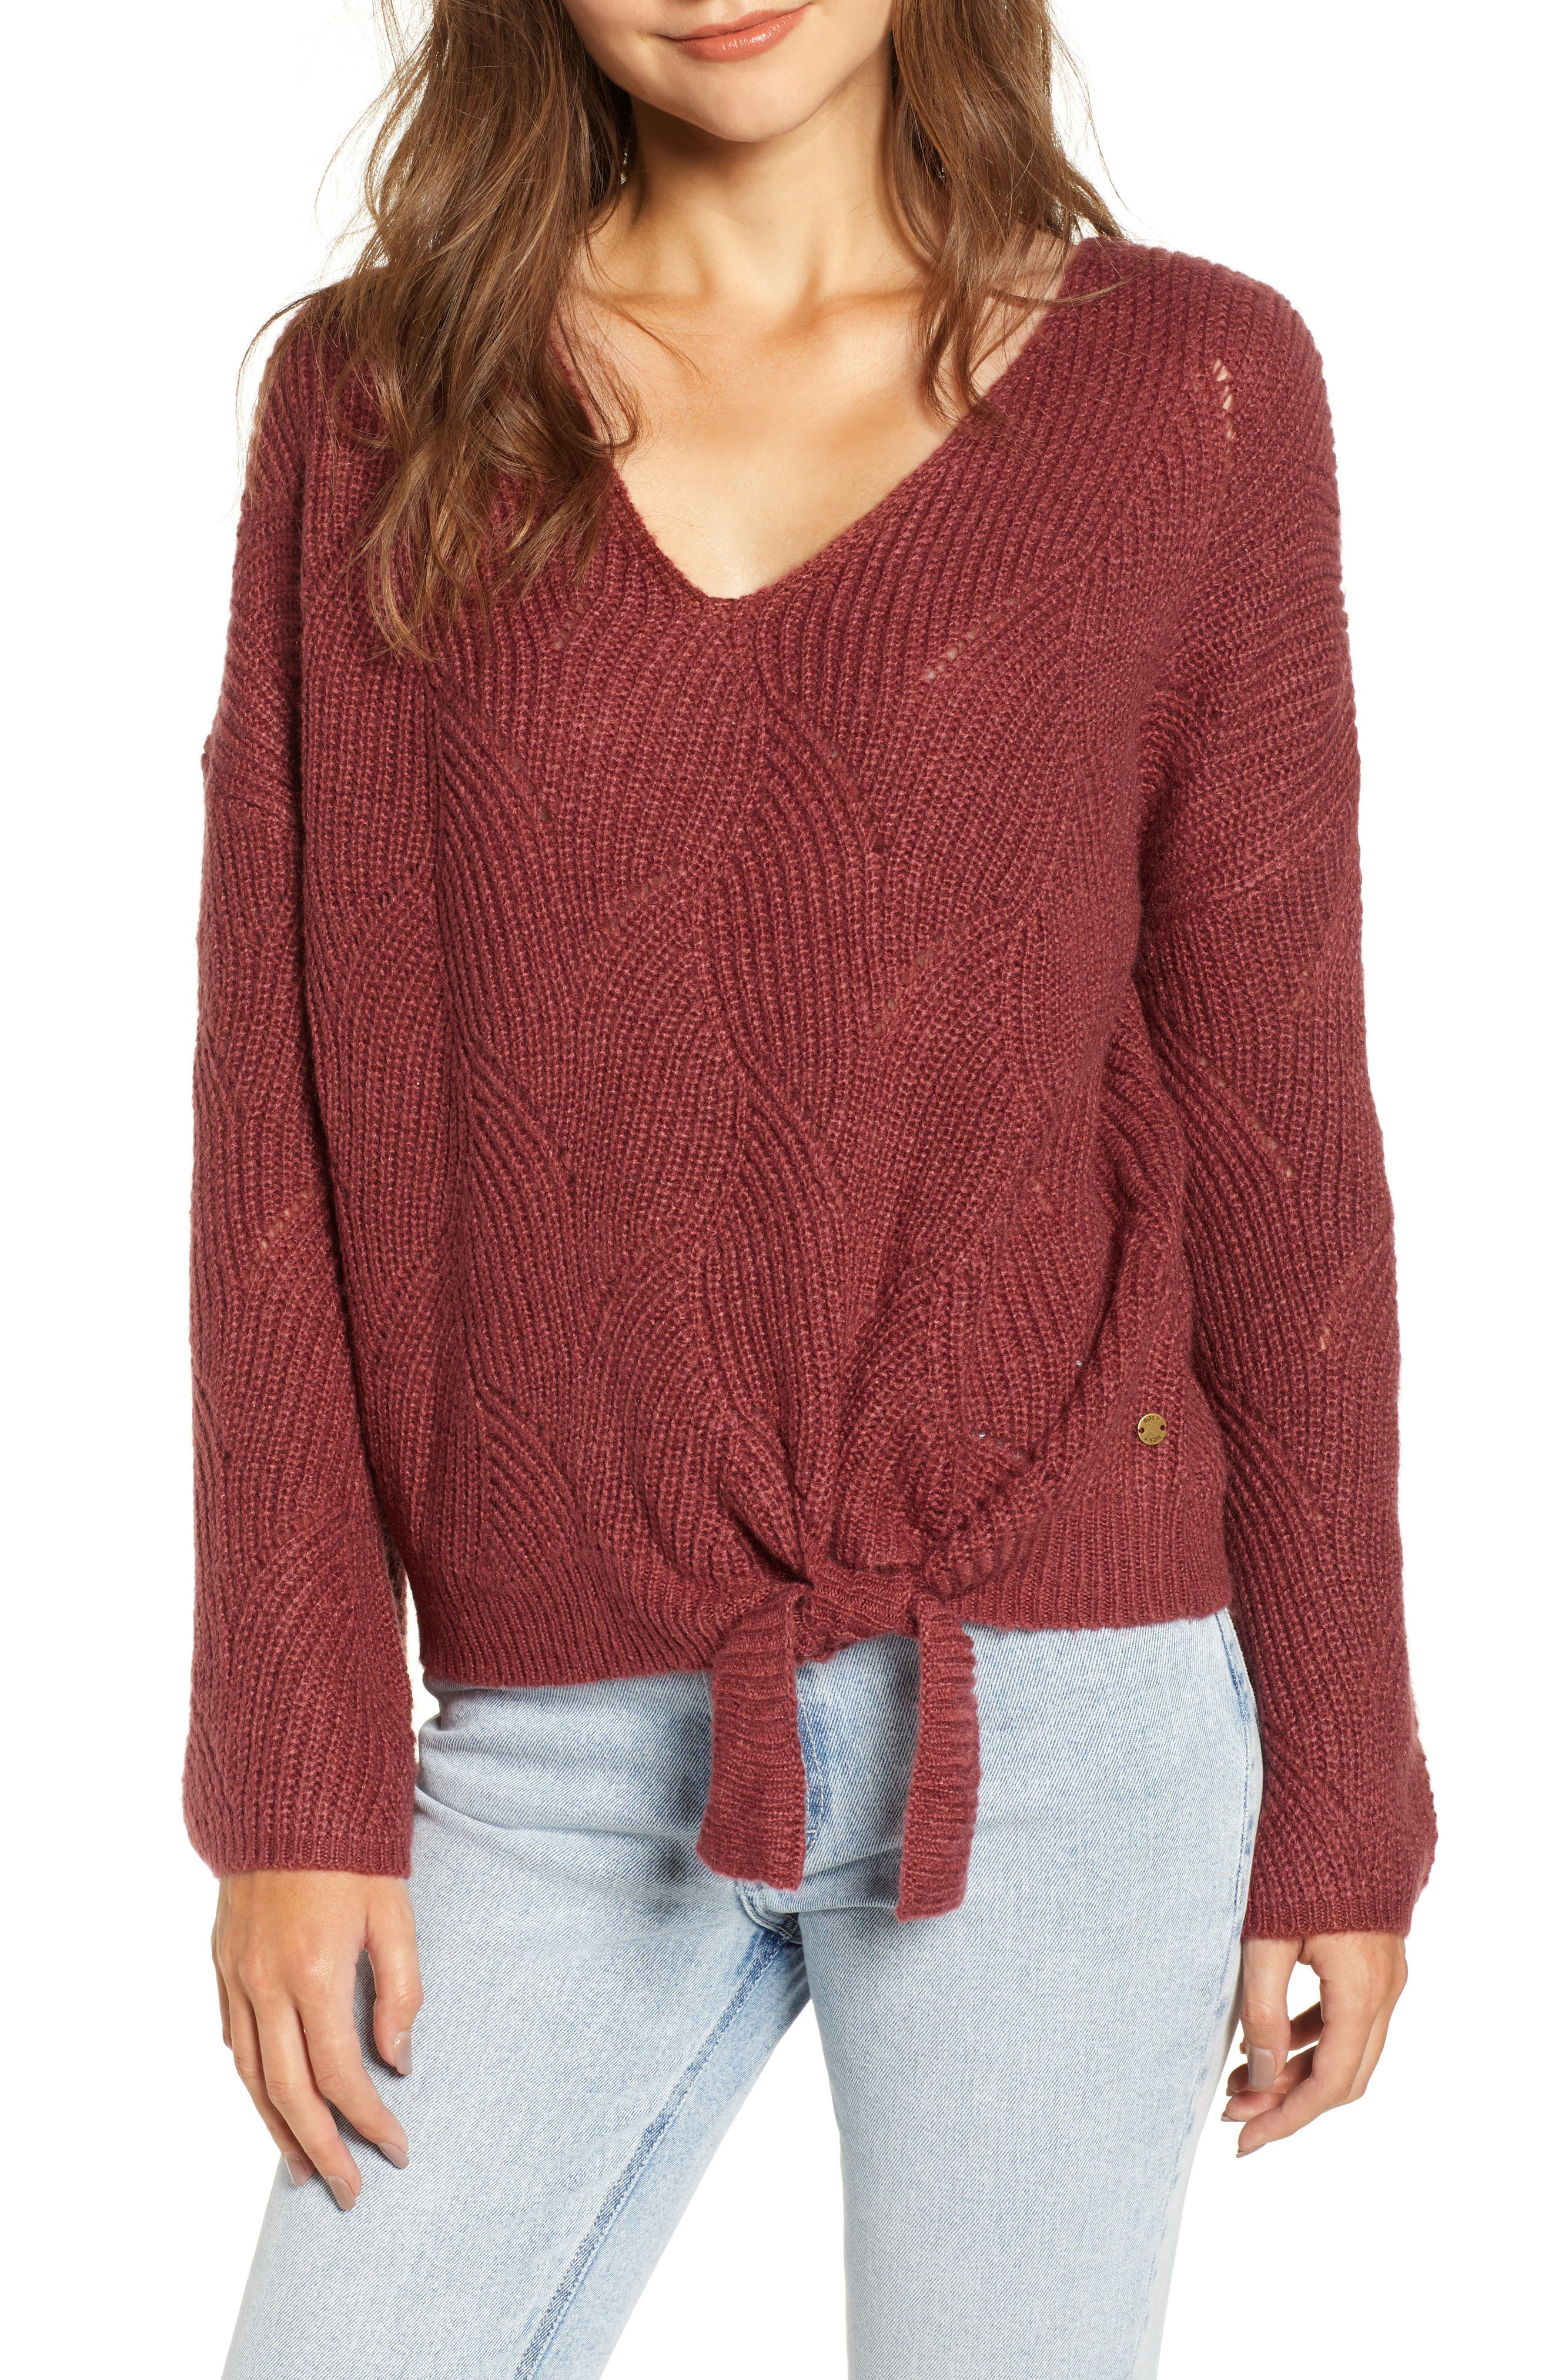 See You In Bali Sweater,                             Main thumbnail 1, color,                             OXBLOOD RED